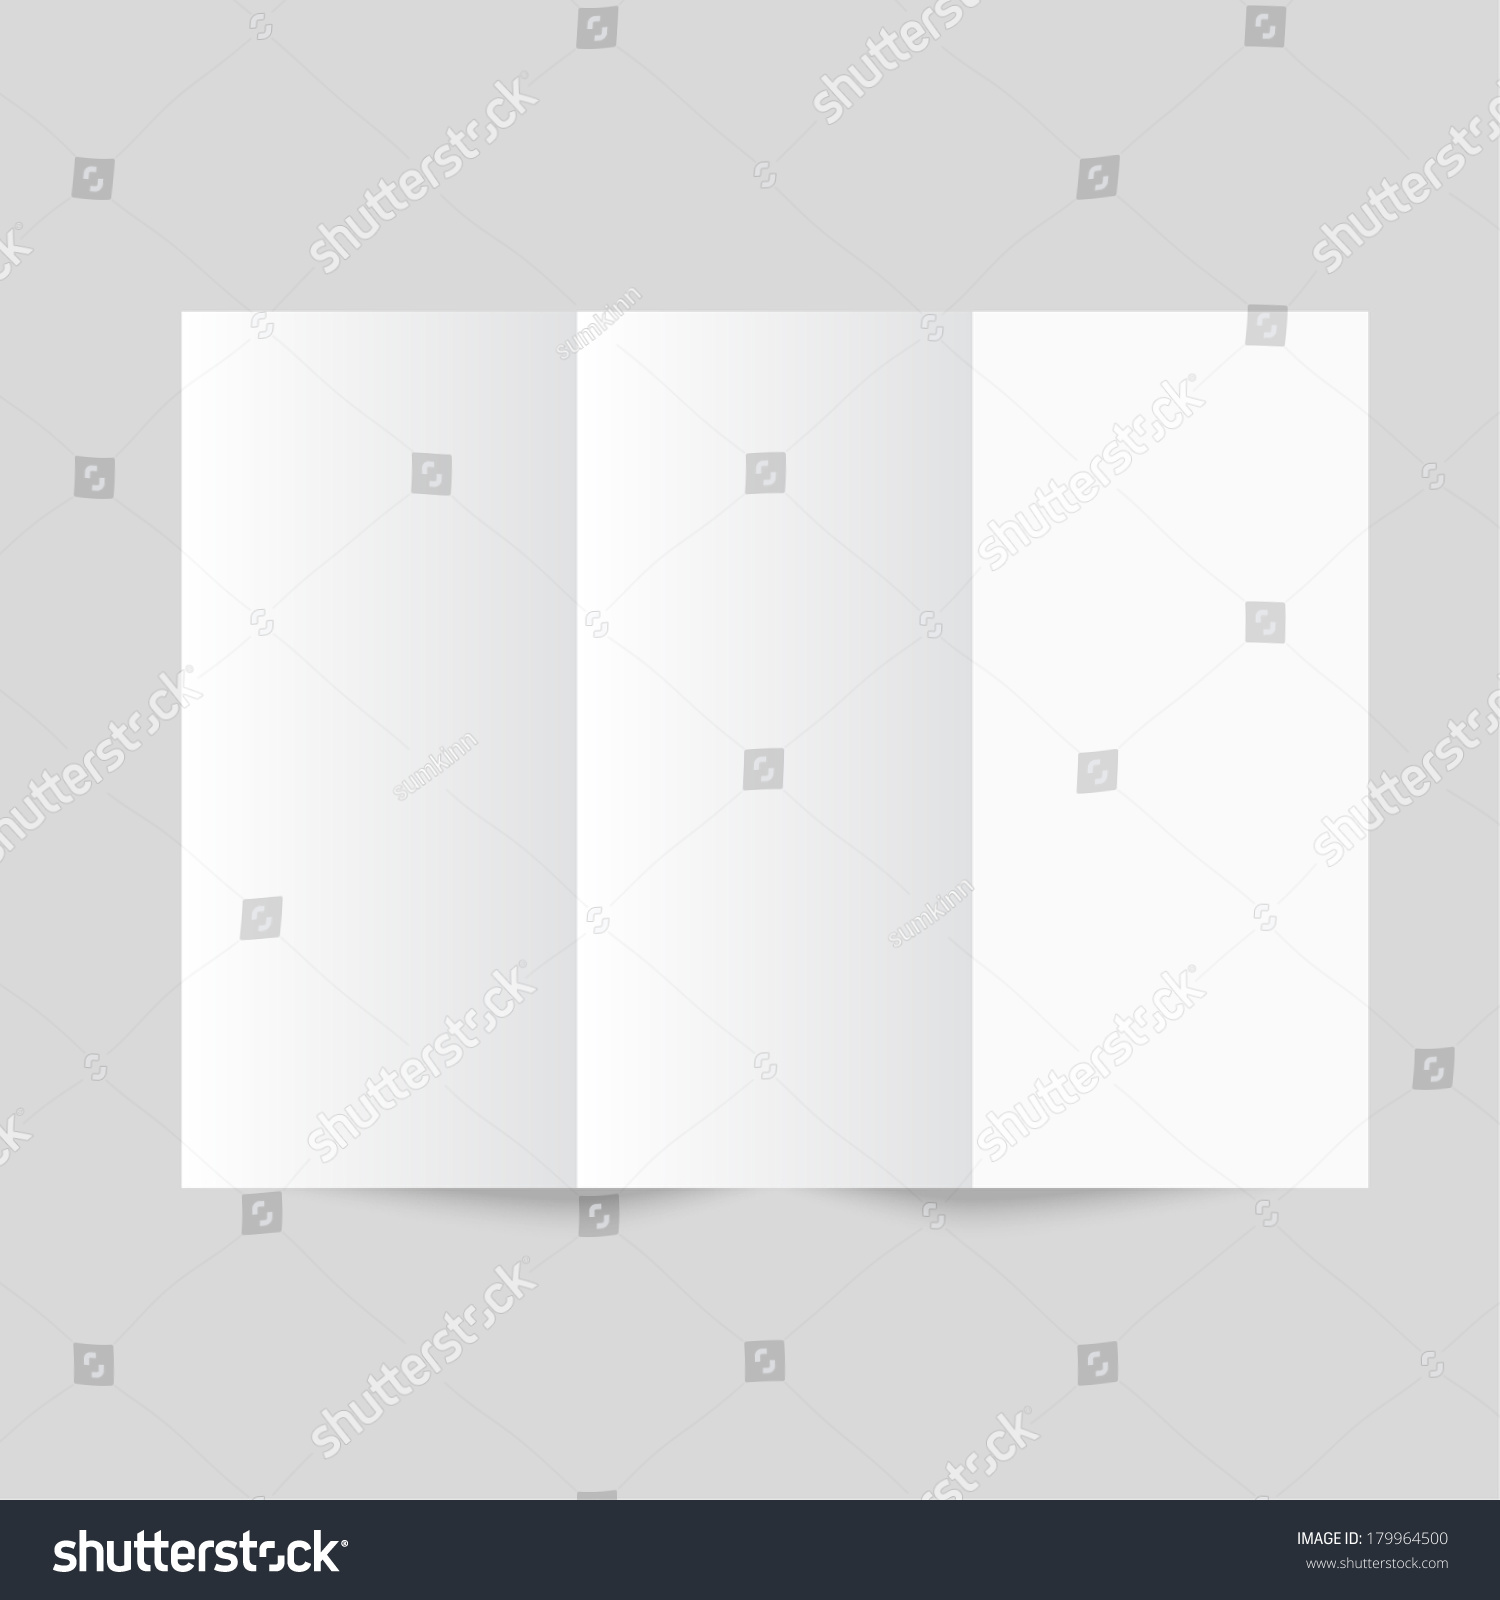 white stationery blank trifold paper z folded brochure on gray